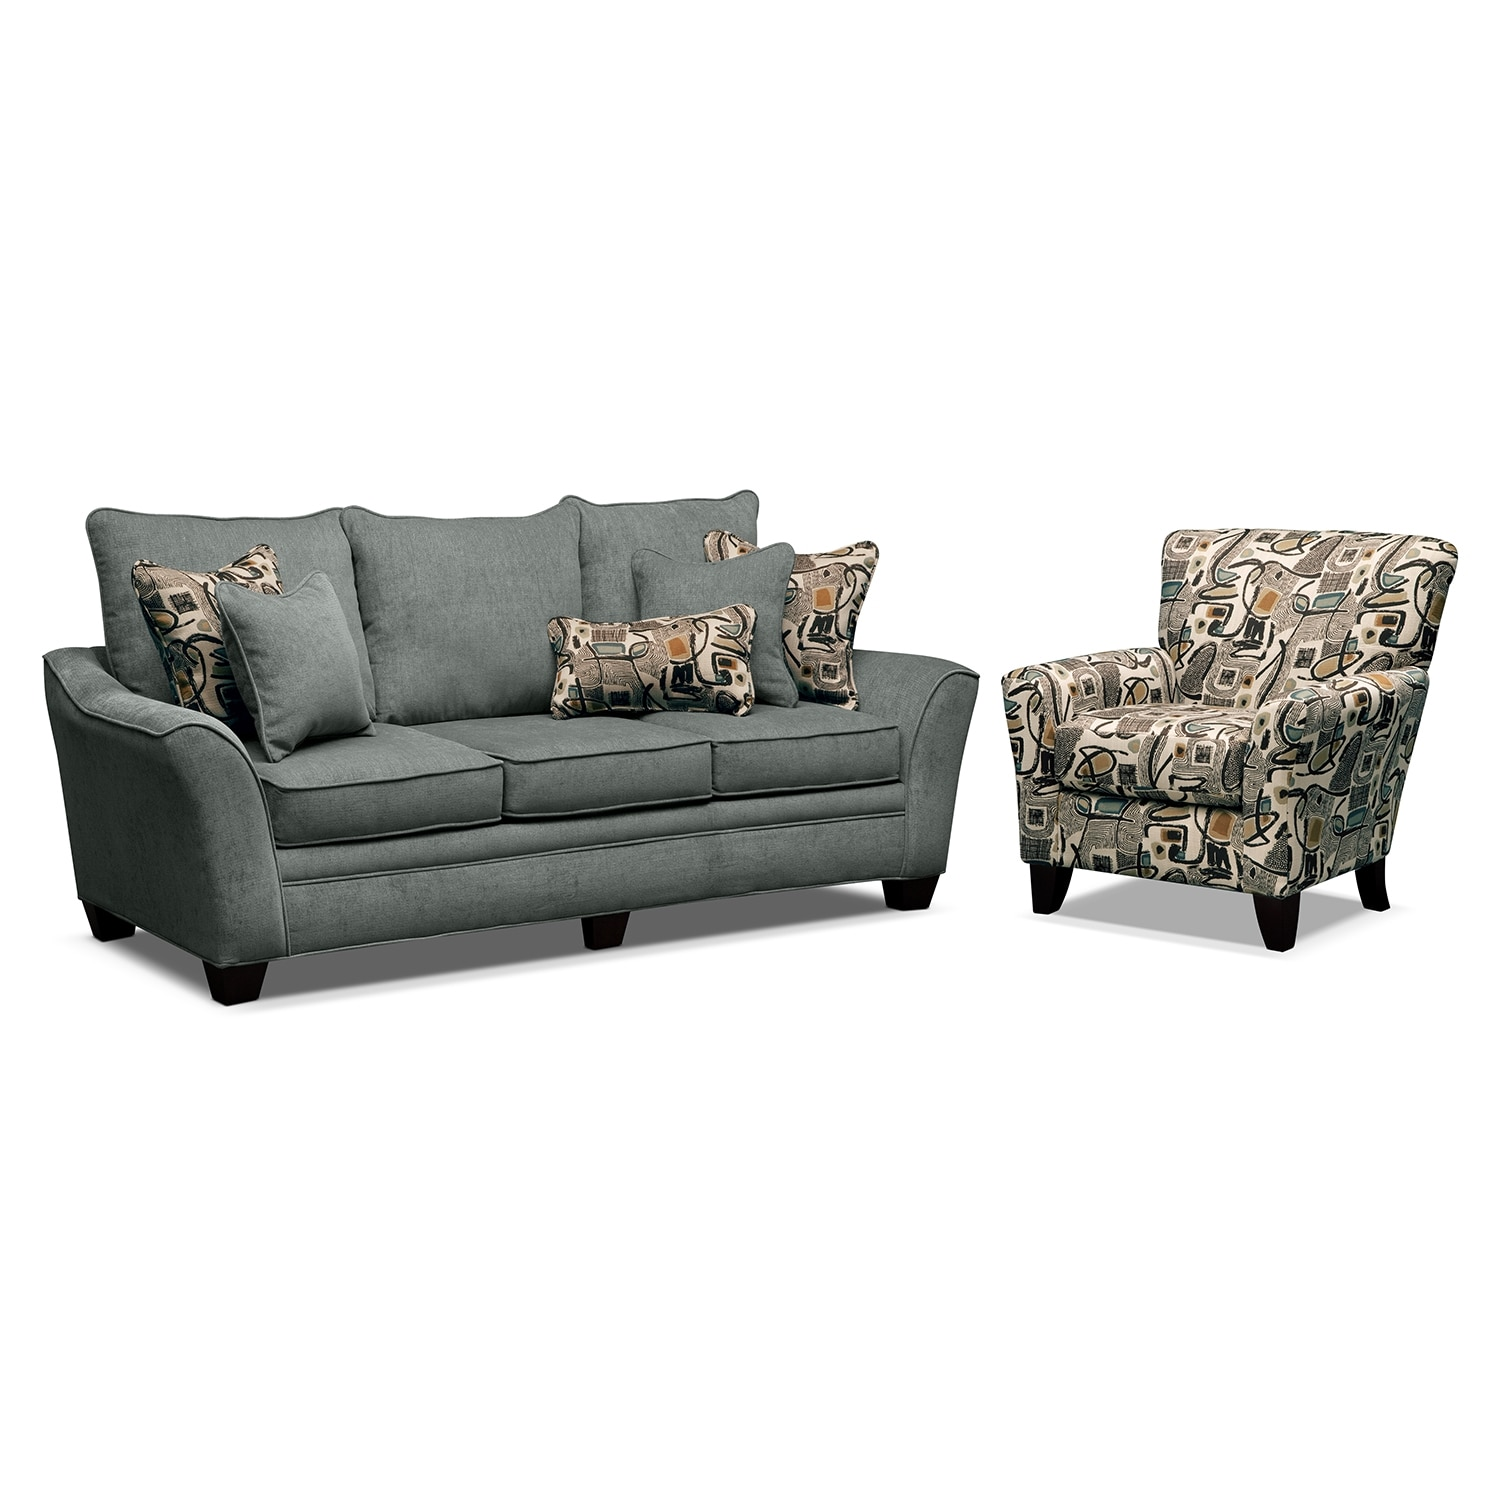 Living Room Furniture - Mandalay II 2 Pc. Sofa with Accent Chair